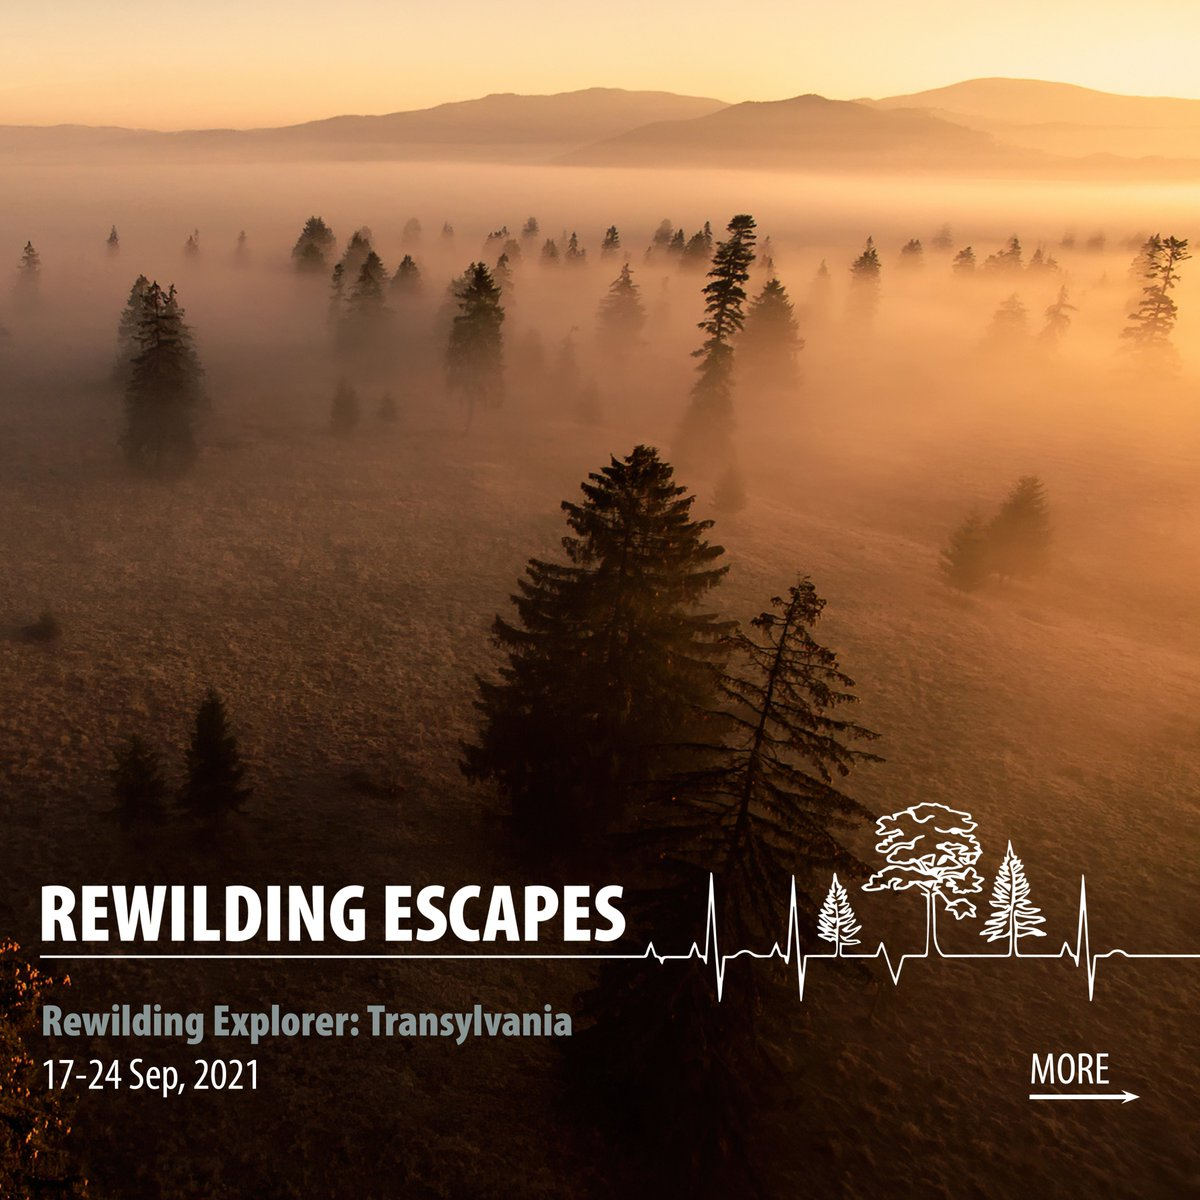 In 2021 were headed to Romania, exploring one of Europes last remaining wilderness areas. Well watch bears from forest hides, immerse ourselves in pristine forests & meet locals to hear 1st-hand how traditional communities live alongside top predators. scotlandbigpicture.com/rewildingescap…